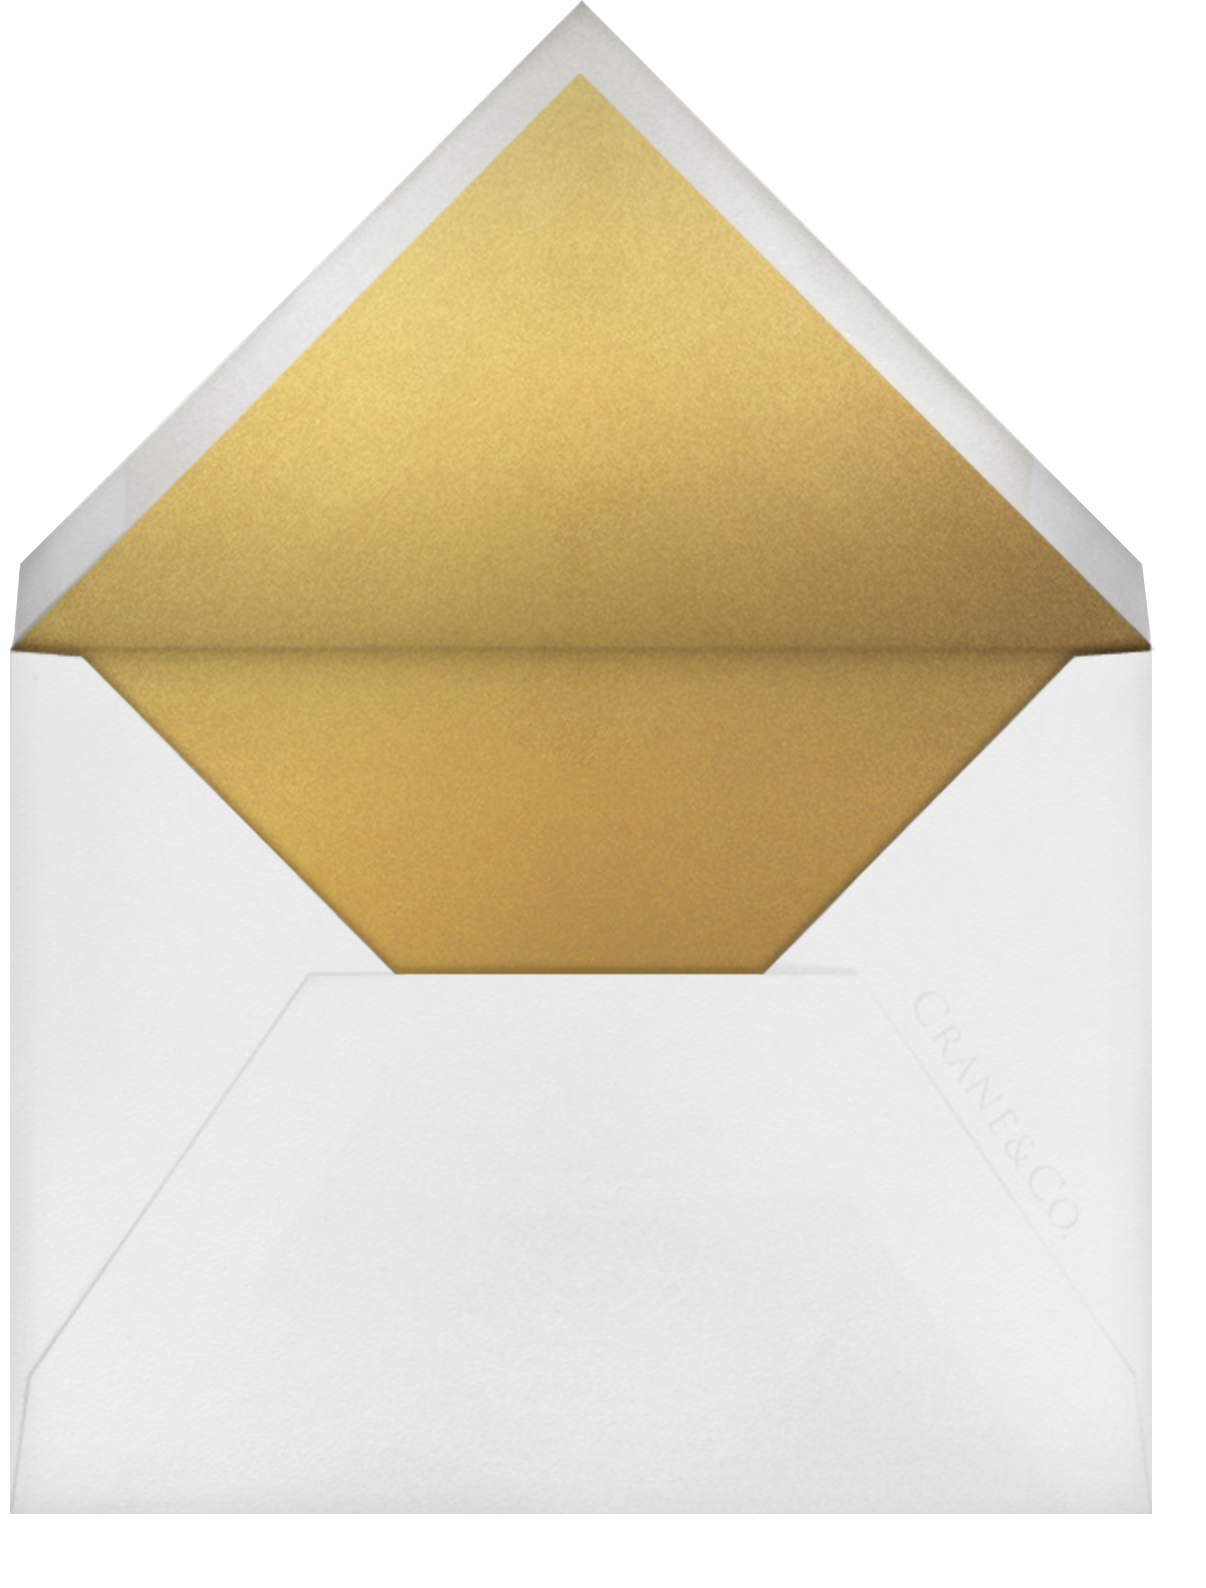 Tuxedo Park - Pearl White - Paperless Post - Personalized stationery - envelope back